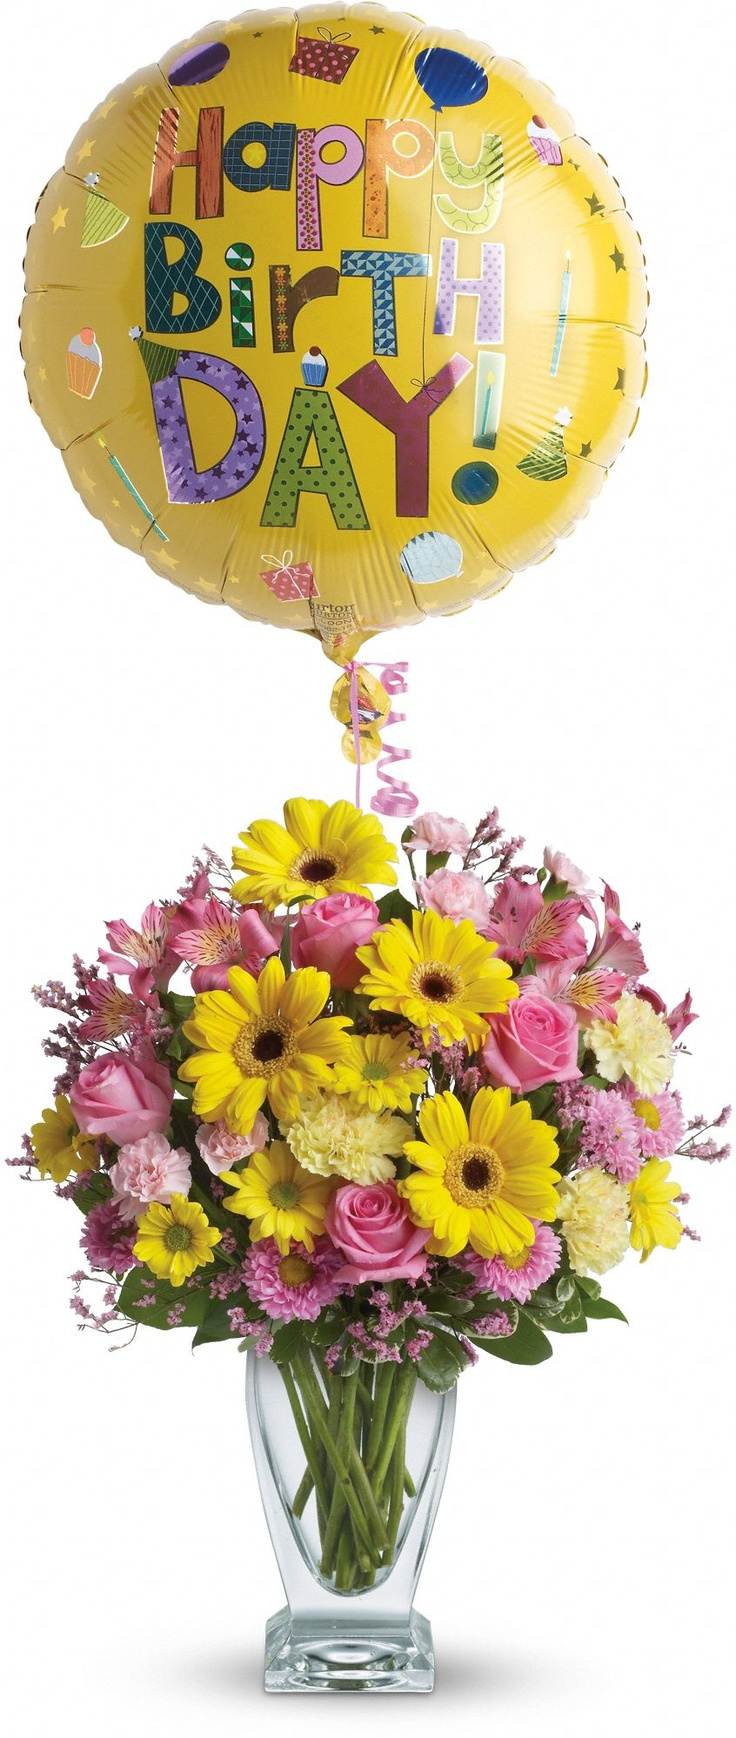 139 best birthdays images on pinterest happy birthday greetings luxurious flowers such as roses gerberas and alstroemeria are gathered in soft shades of pink and yellowrives in telefloras glass couture vase izmirmasajfo